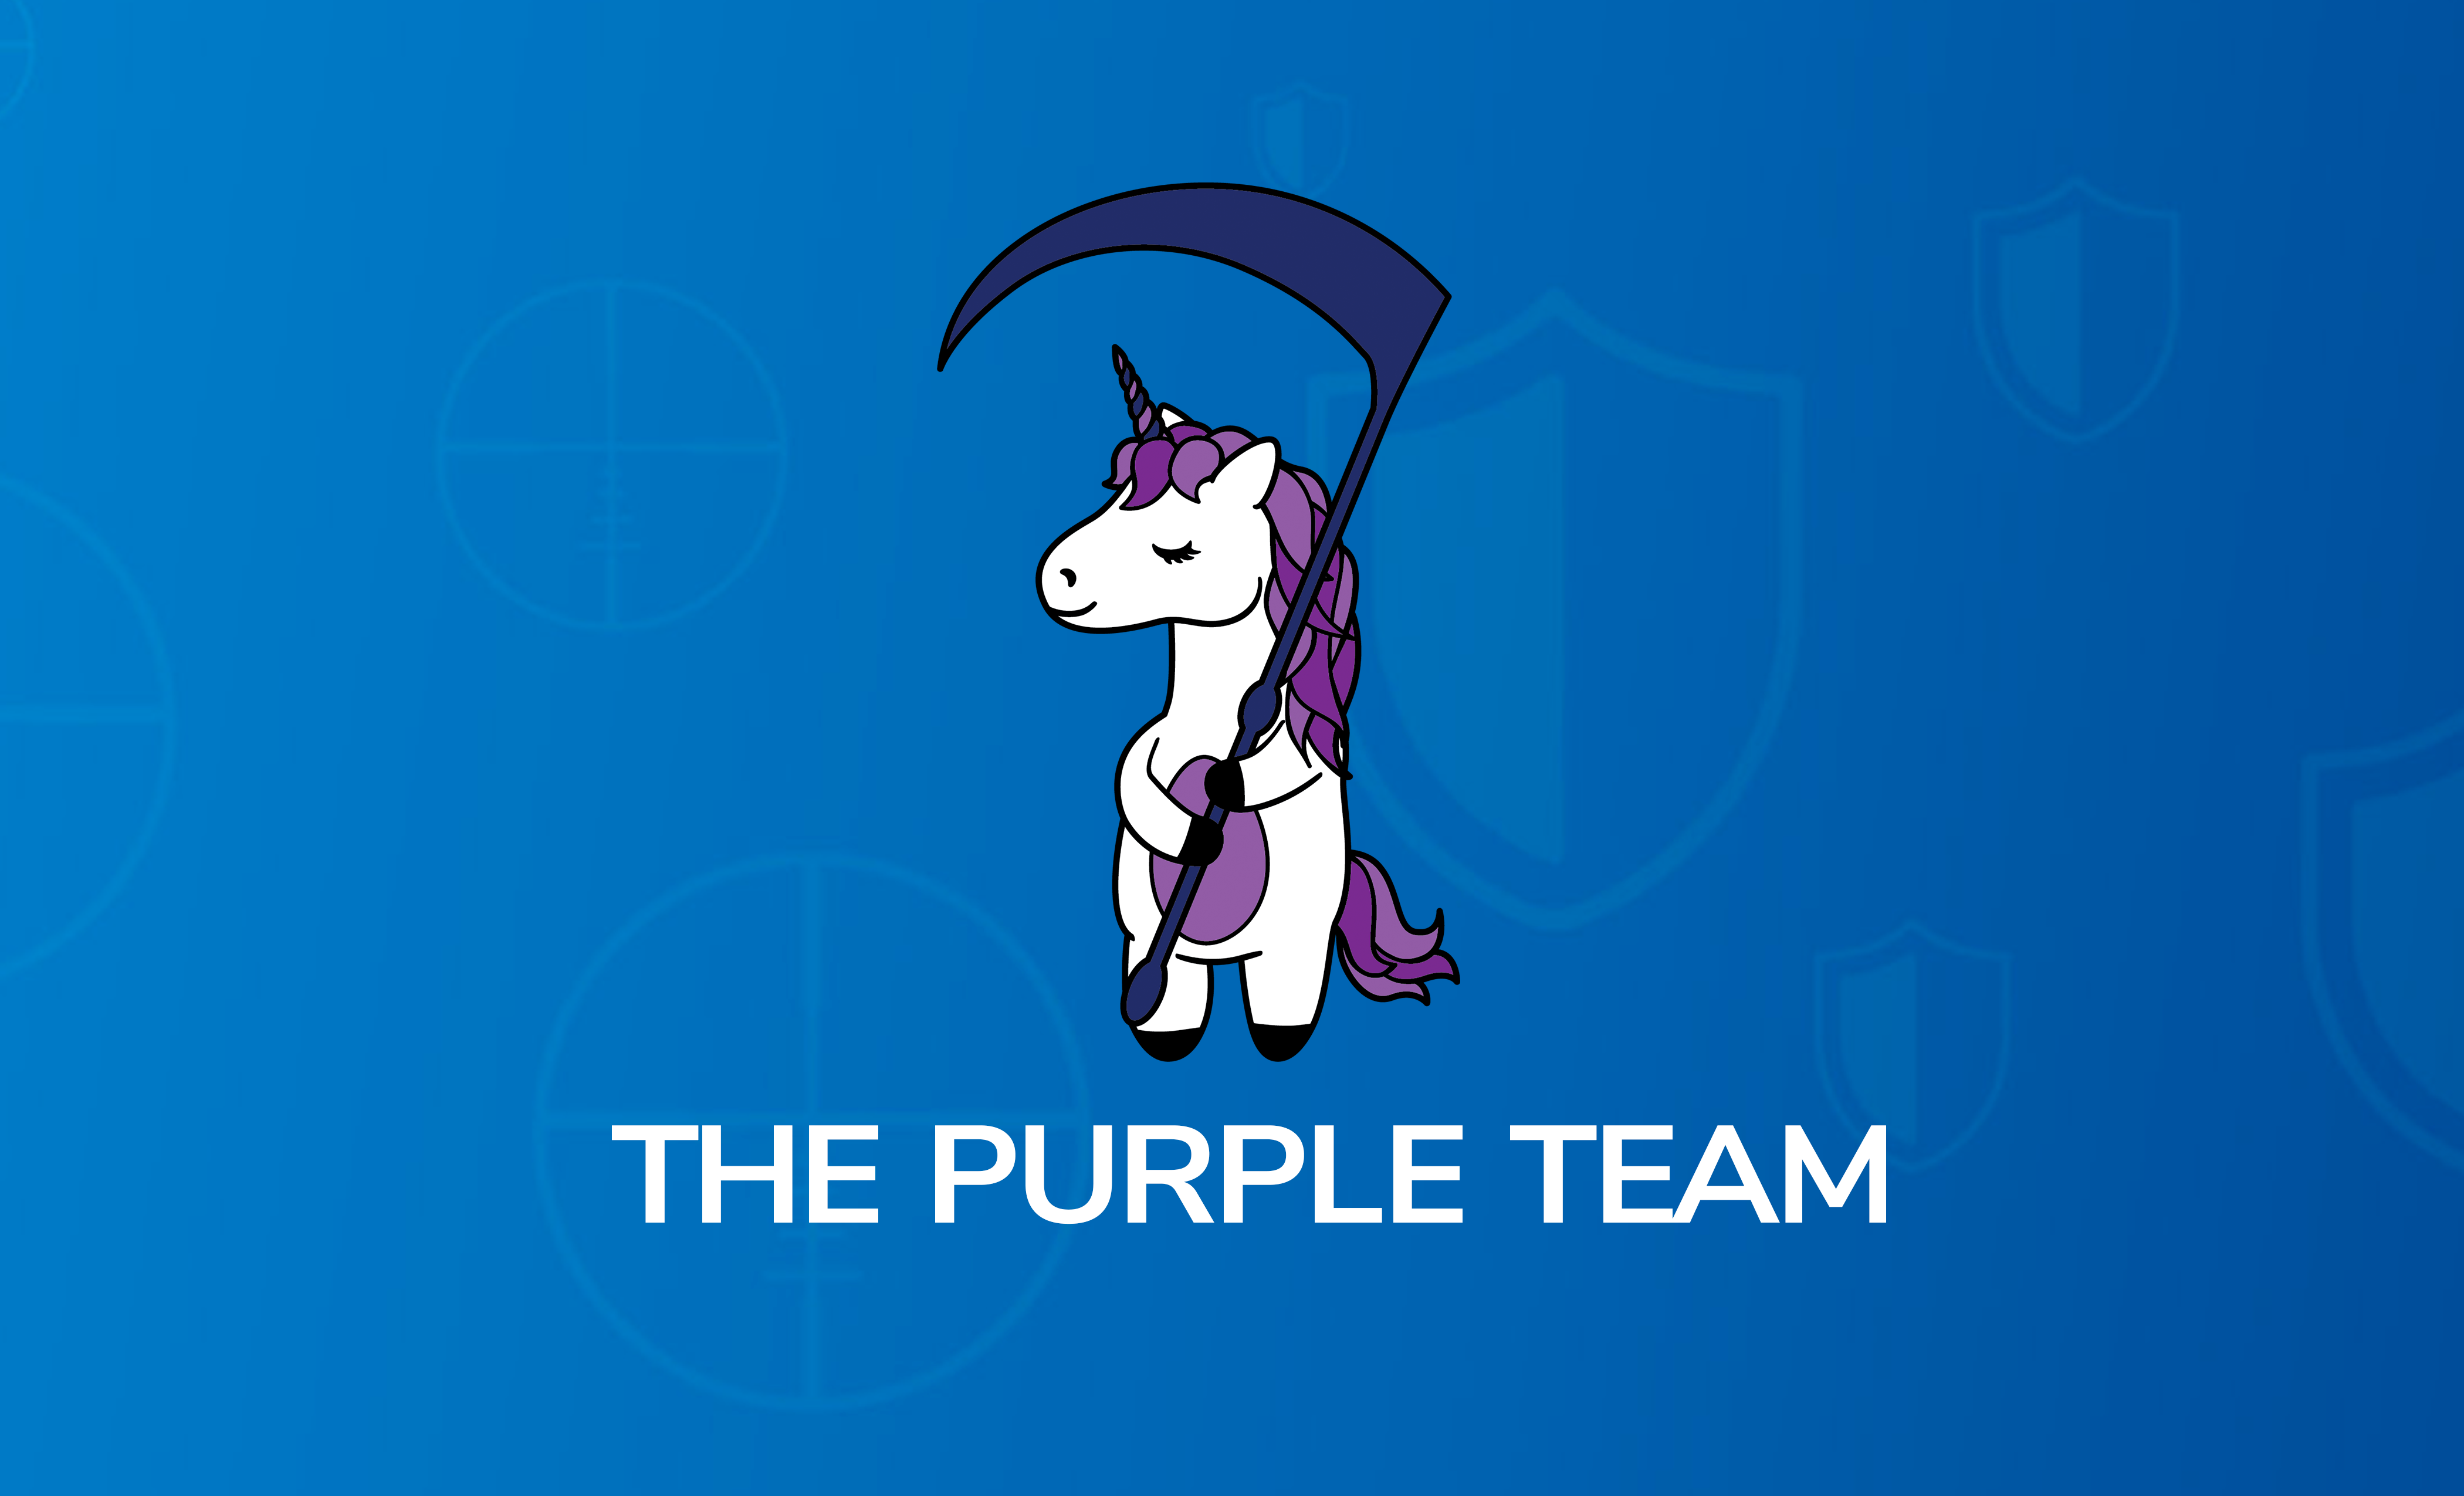 The Purple Team - Organization or Exercise